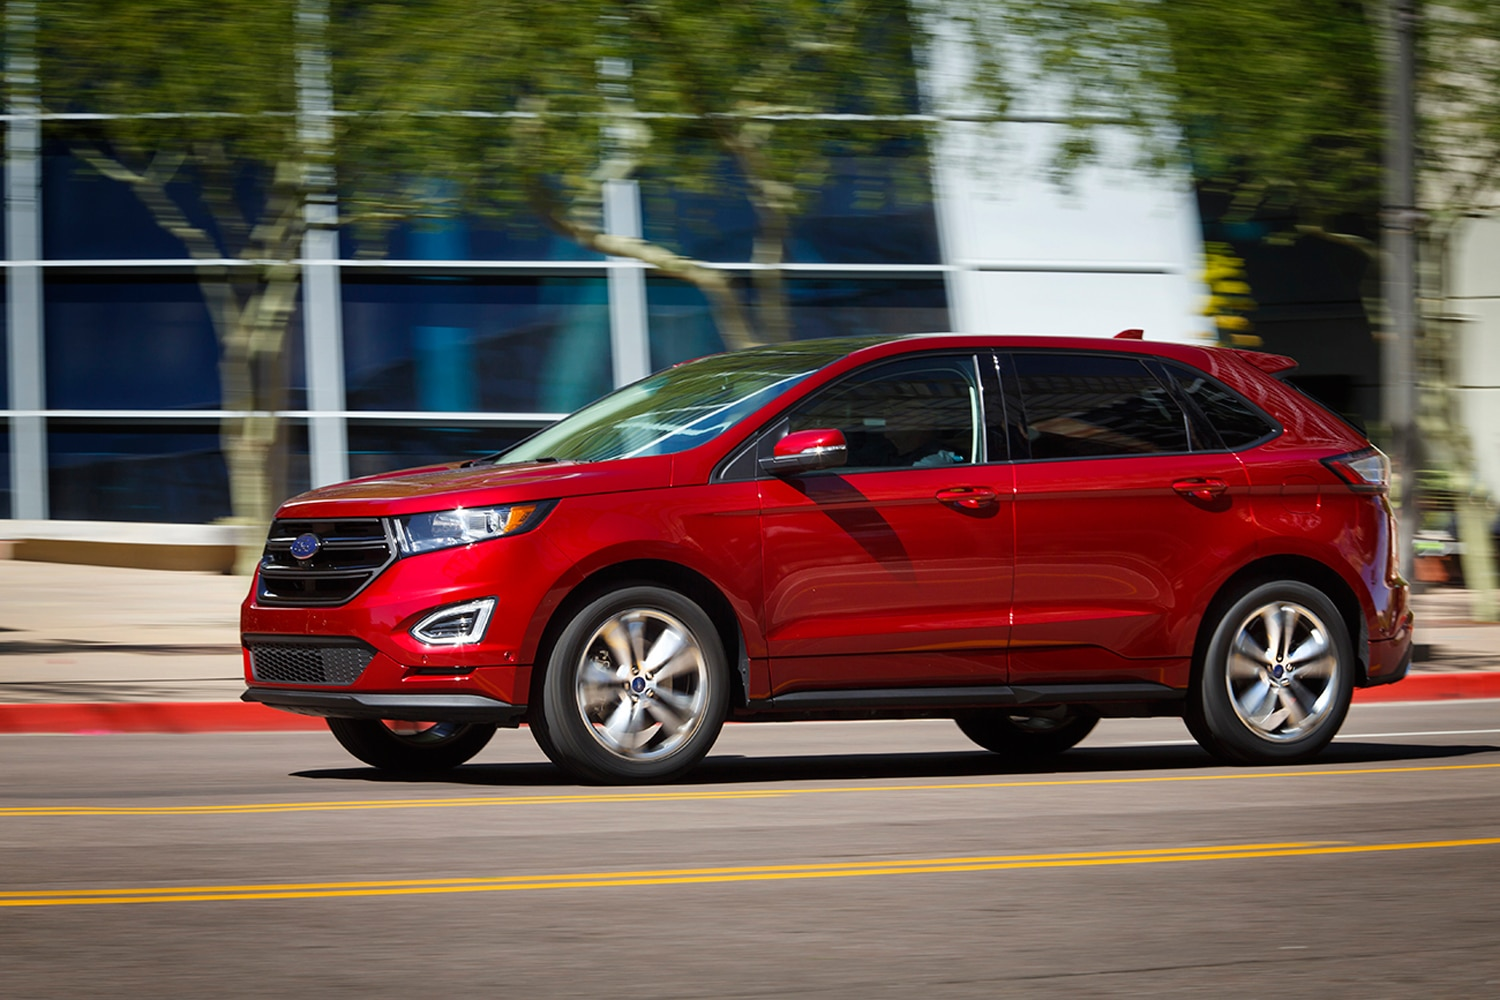 ford refutes reports on 2015 ford edge stop sale. Black Bedroom Furniture Sets. Home Design Ideas